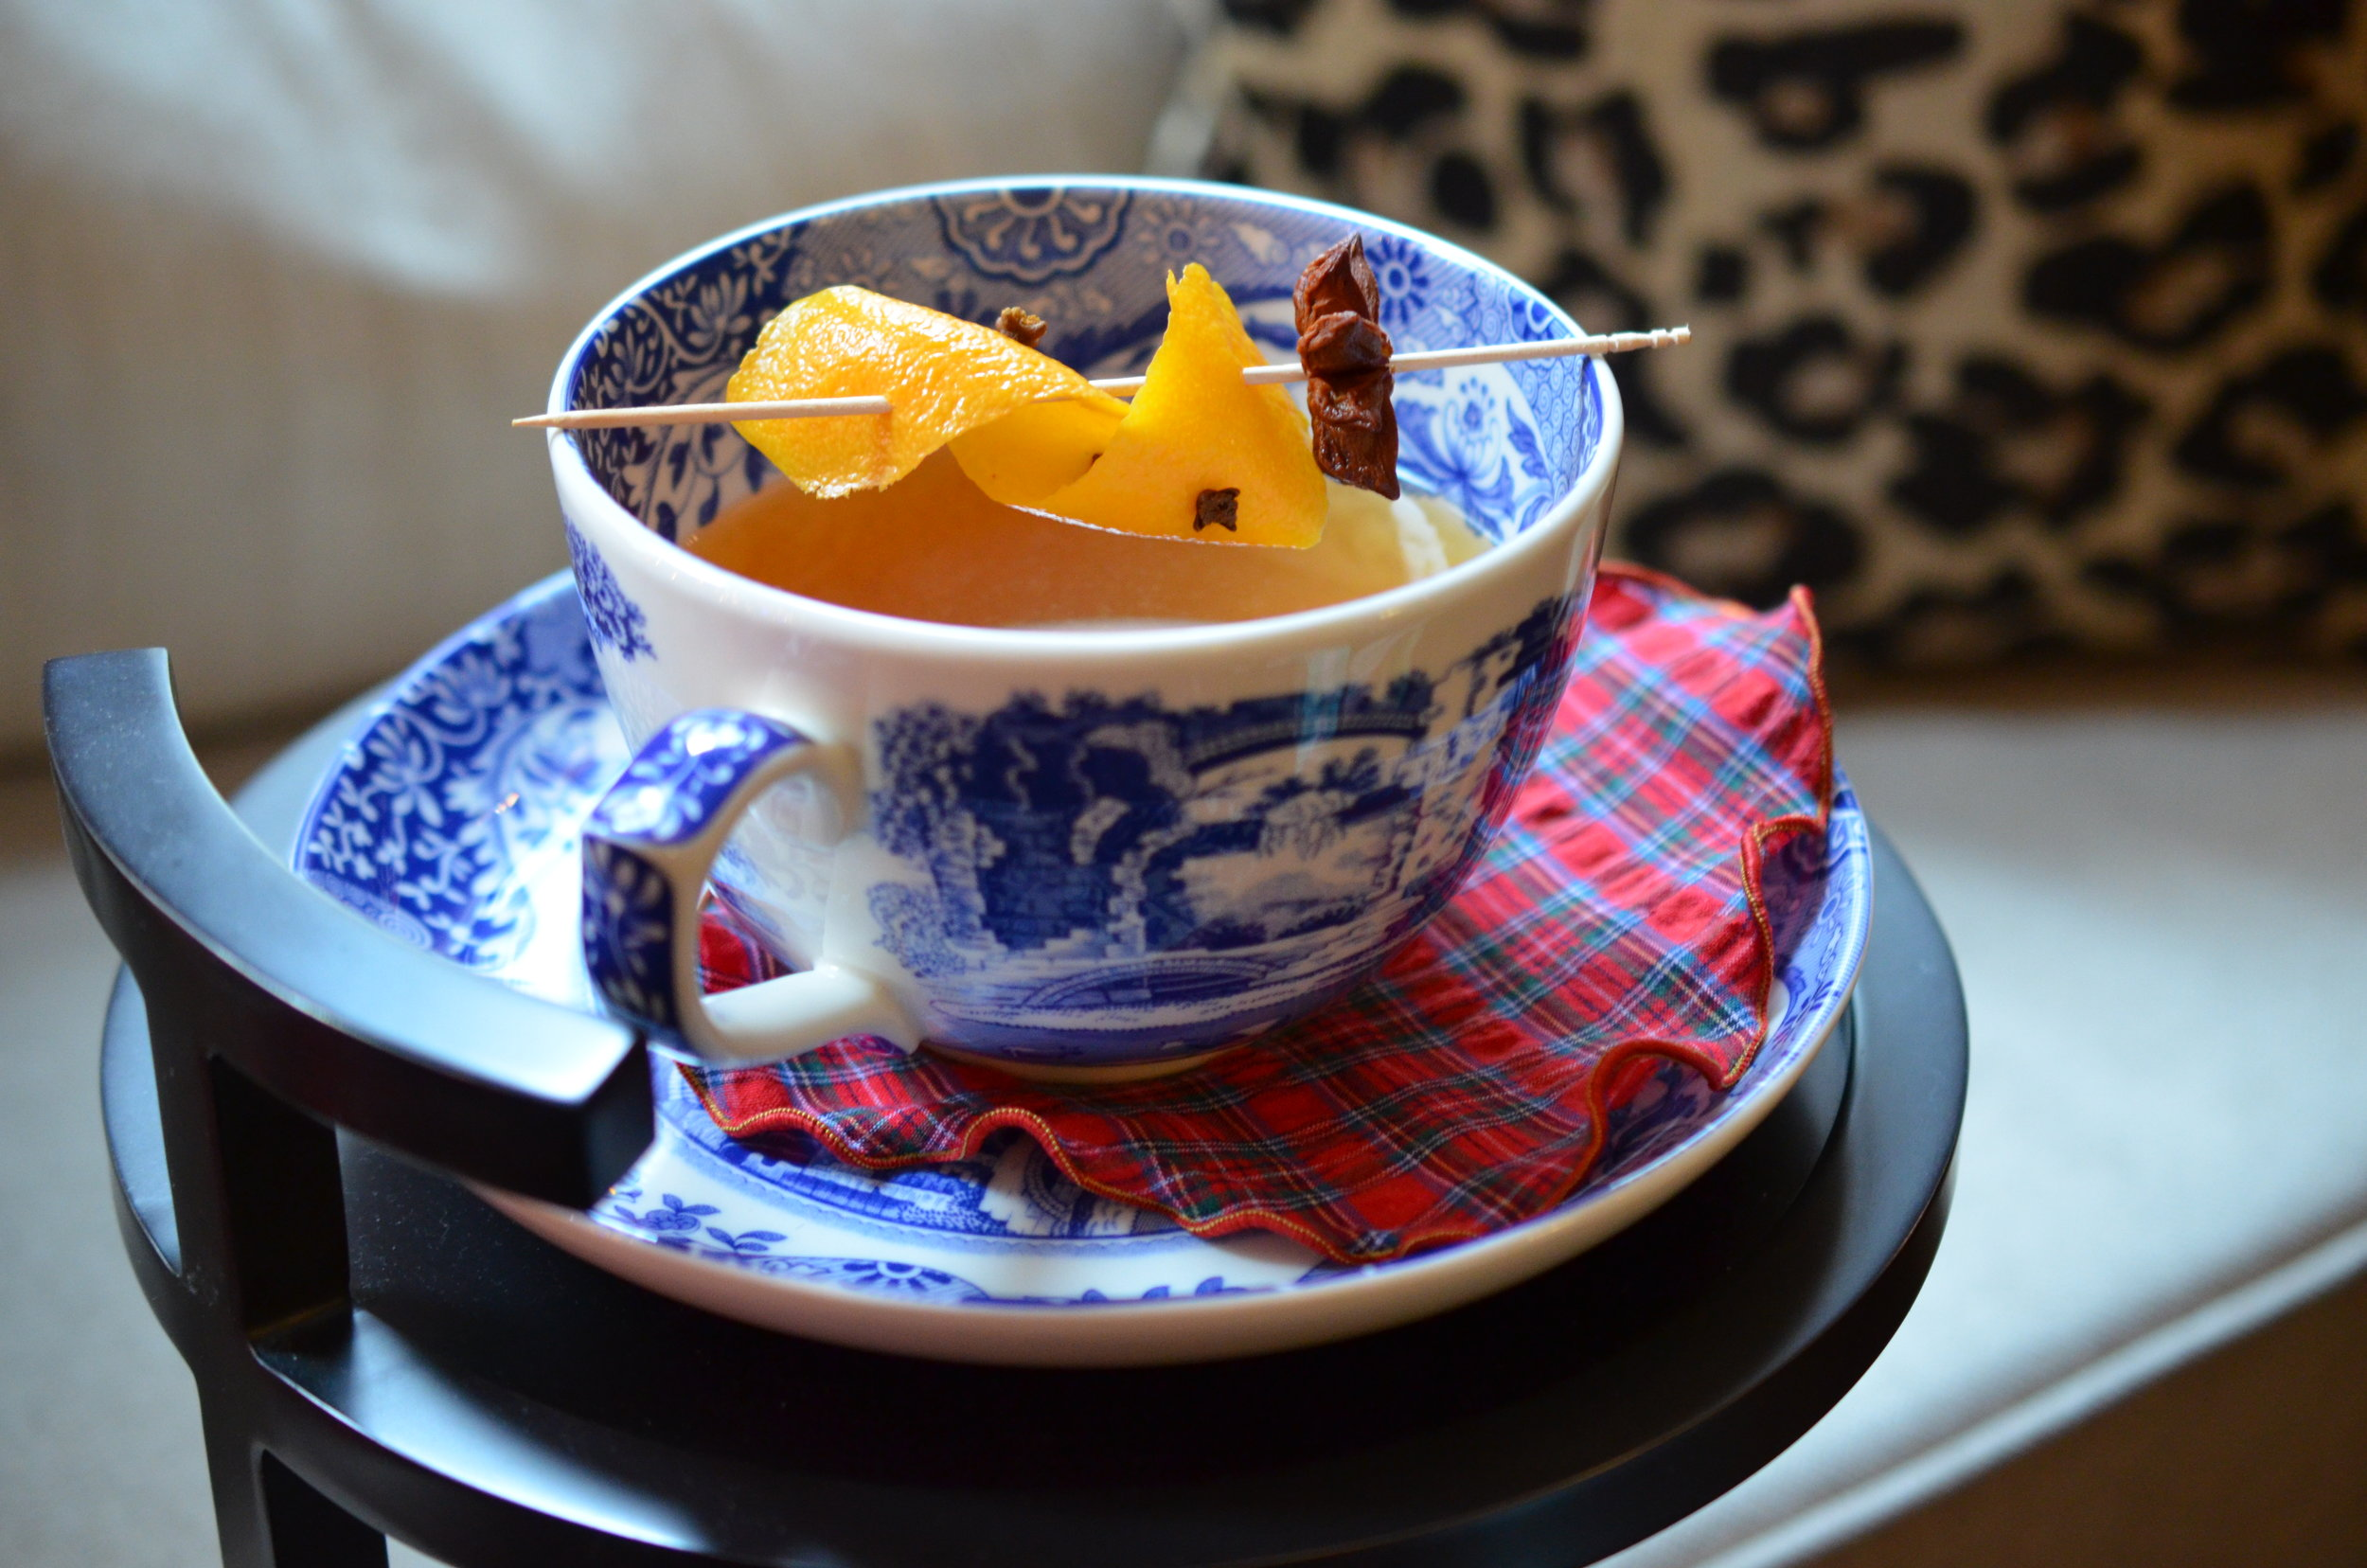 My Warm Winter Glühwein - Inspired by a recent trip to Berlin, Germany for a grand tour of the Christmas markets!  Napkins: Britten Couture Home .  Cup & Saucer: Cassandra's Kitchen.